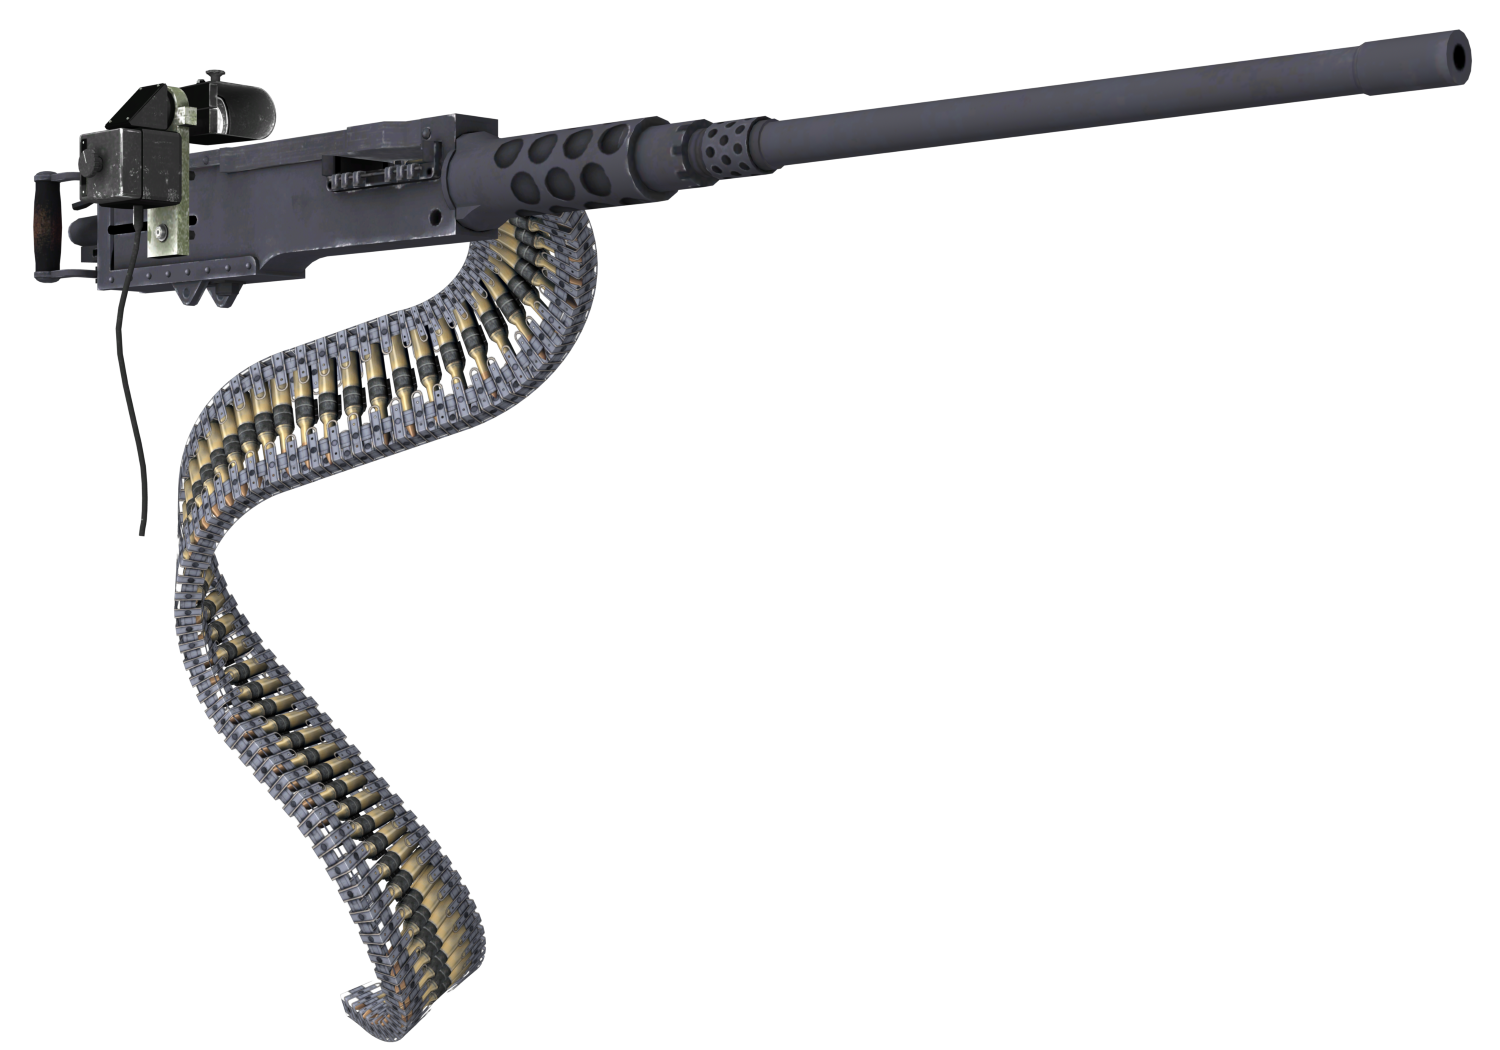 Amazing M1919 Browning Machine Gun Pictures & Backgrounds